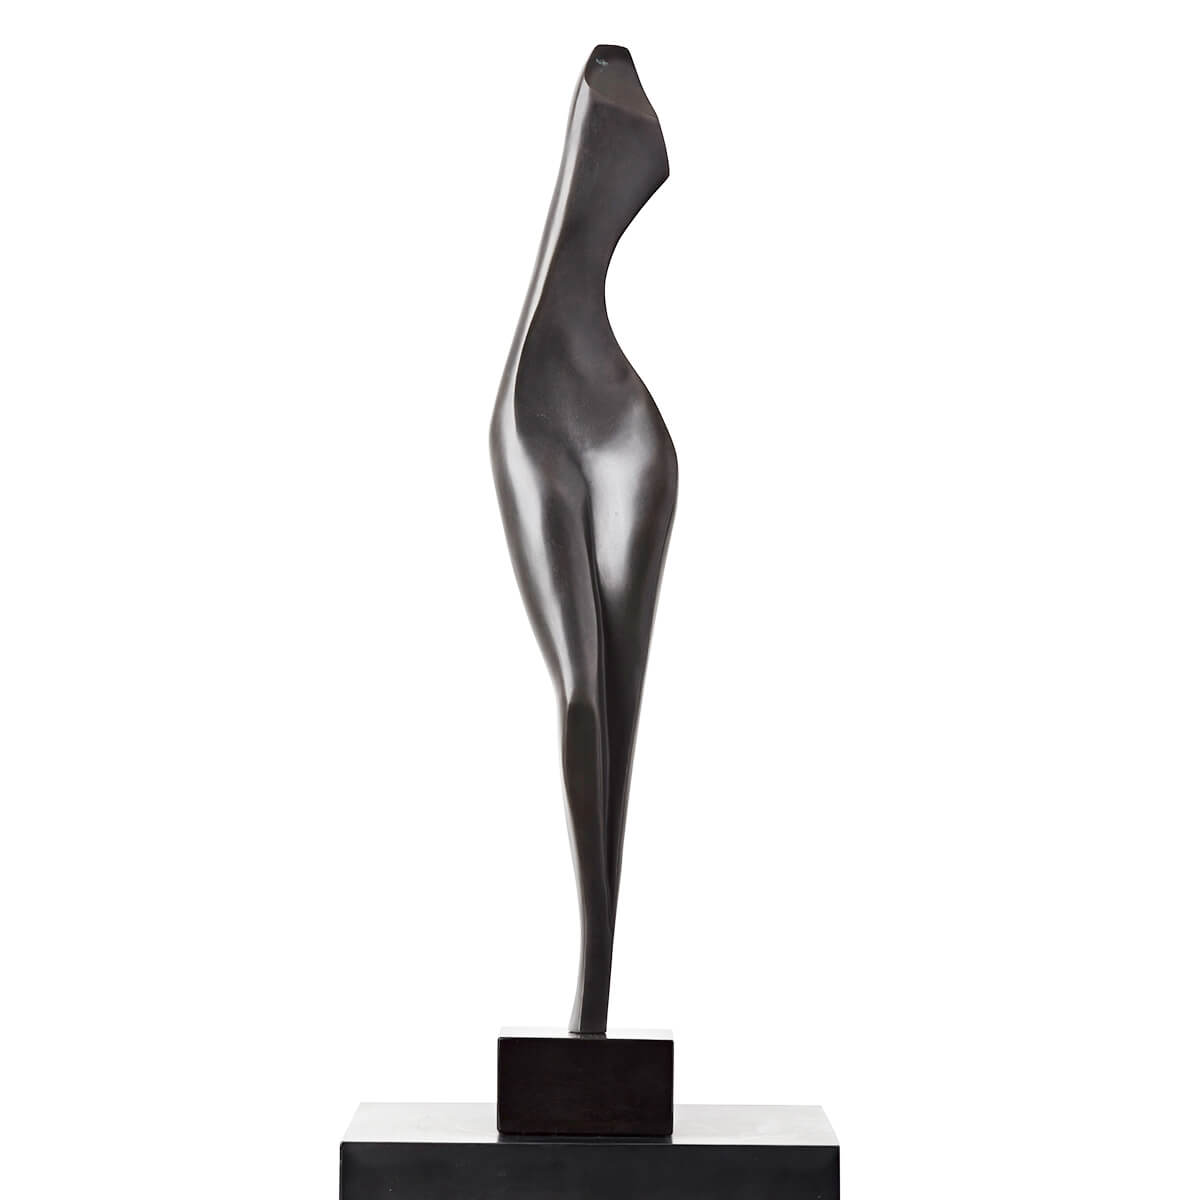 Robert-Helle-Sculpture-Gallery-Female-Mystique-4a-1200x1200